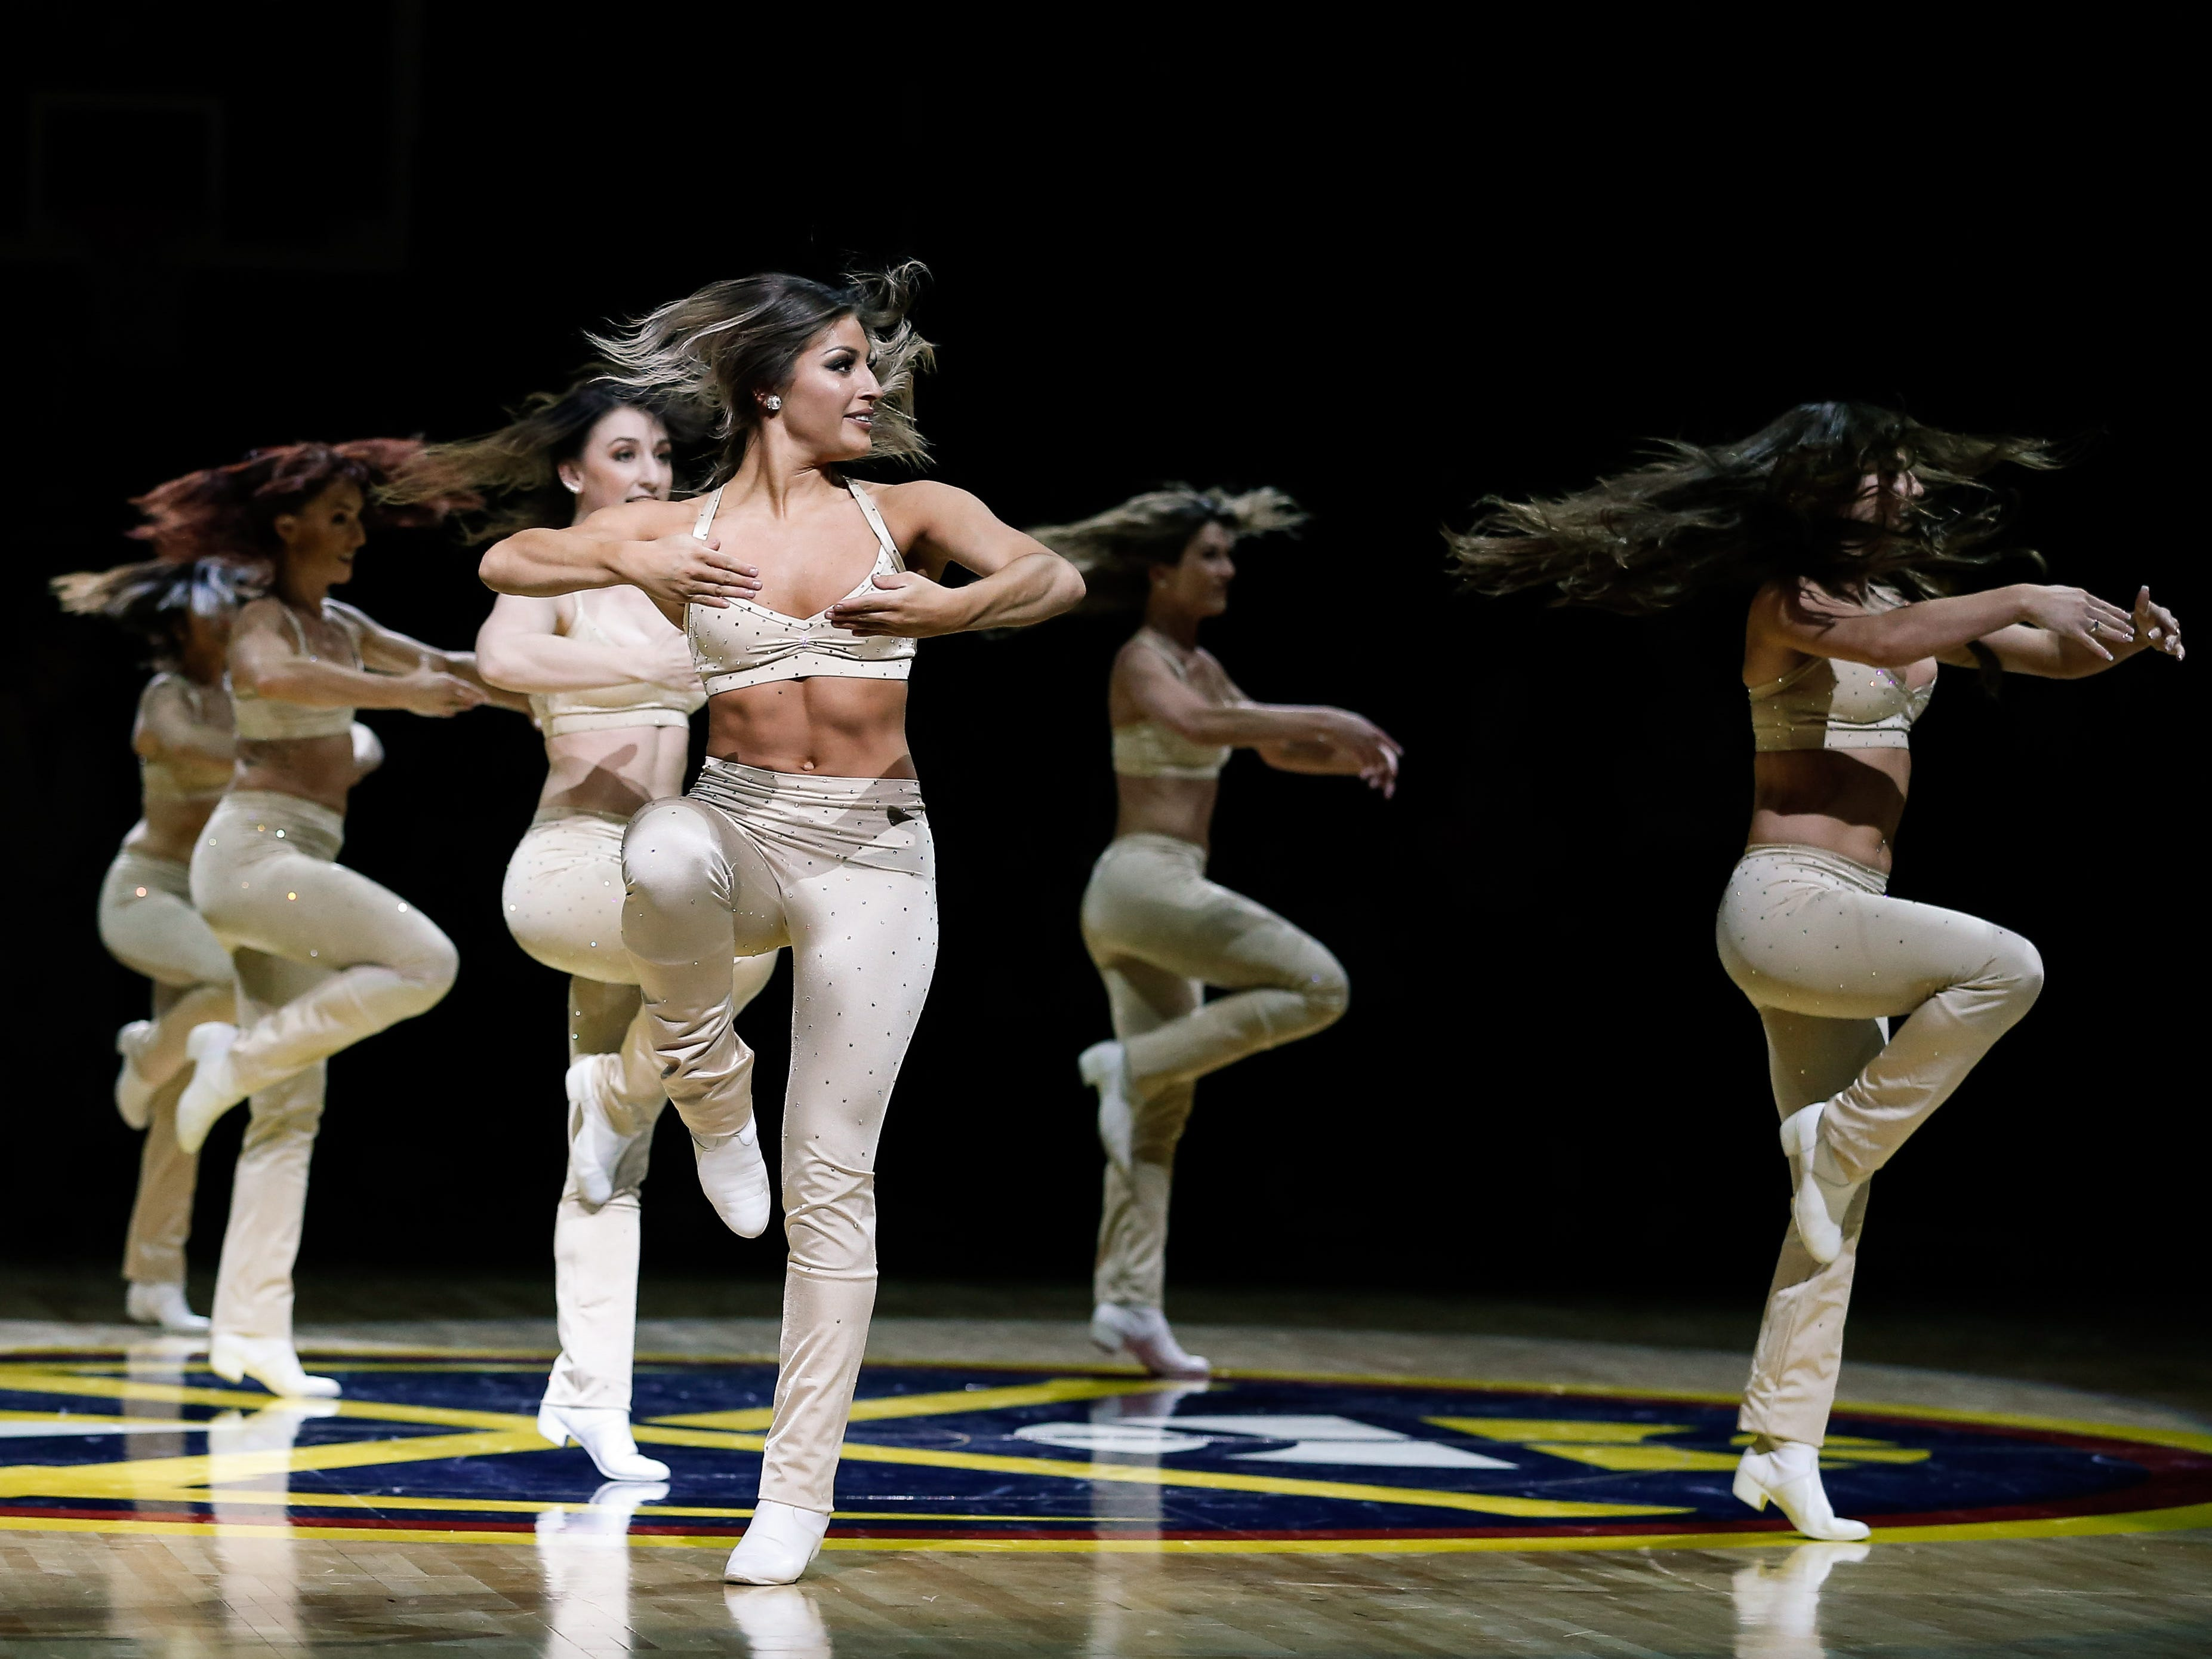 Jan. 1: The Denver Nuggets dancers perform during a break in the action in the game against the New York Knicks at the Pepsi Center.